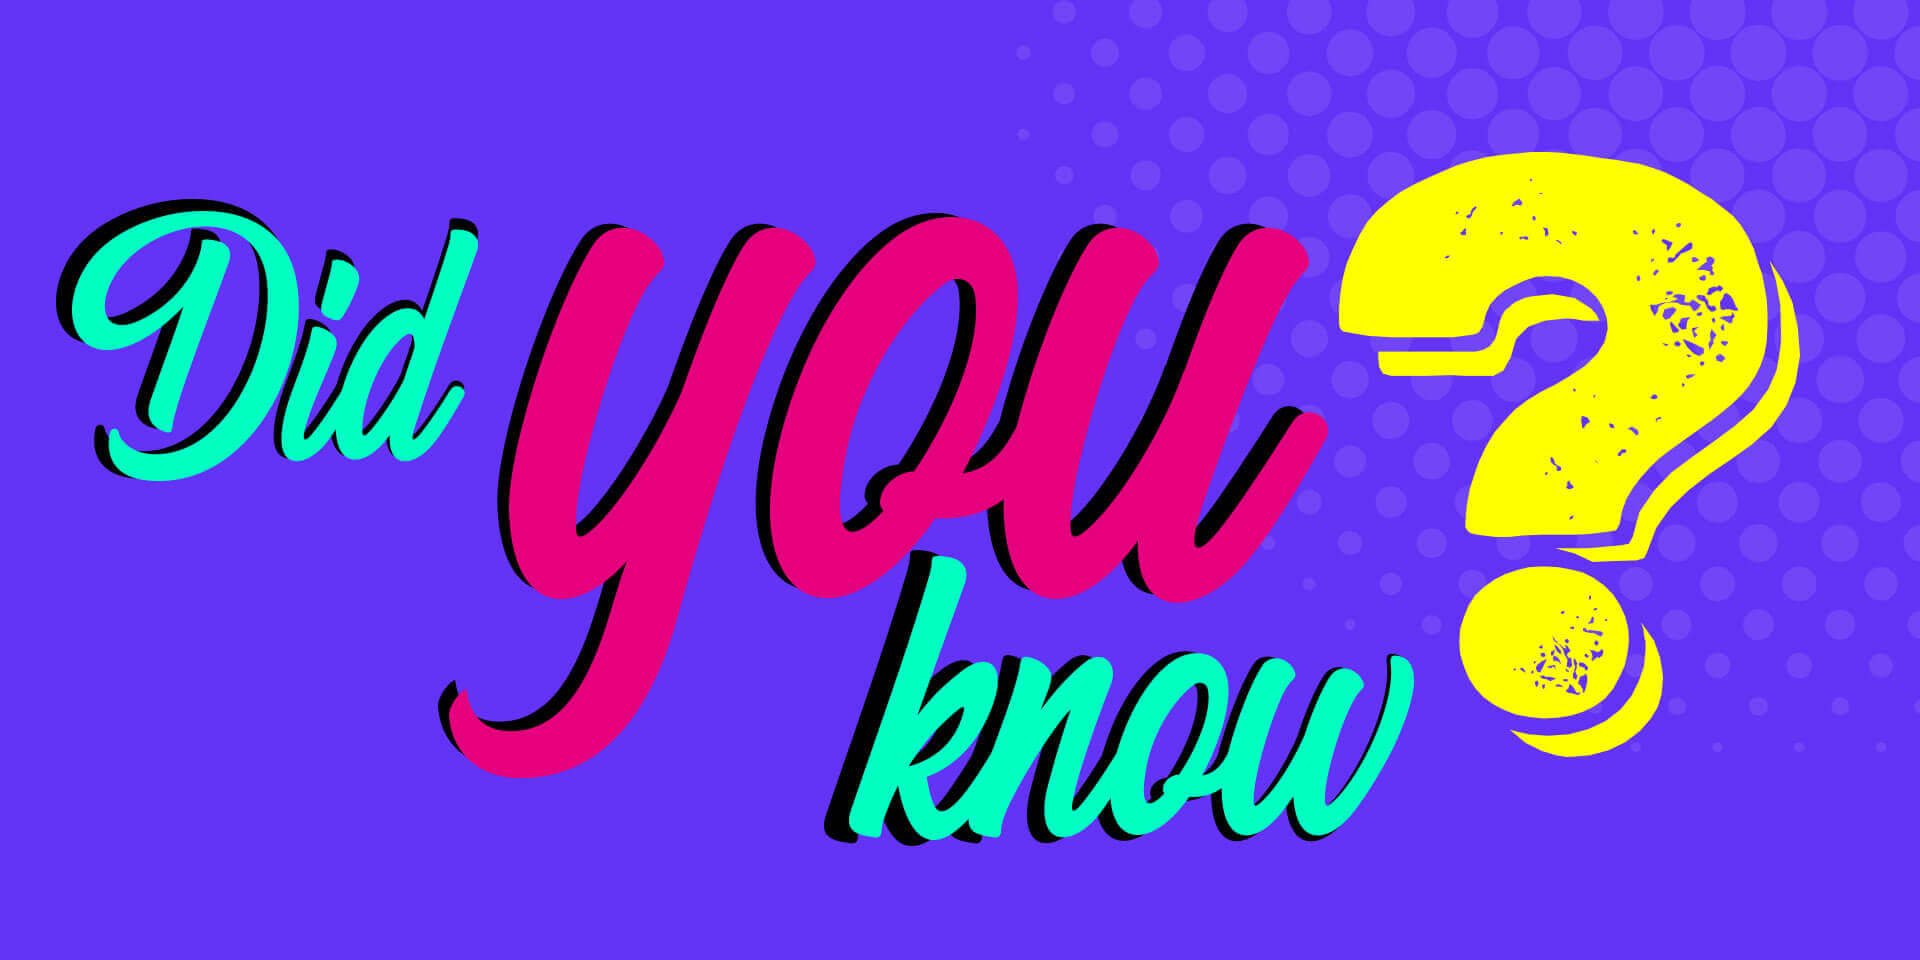 Did you know? image